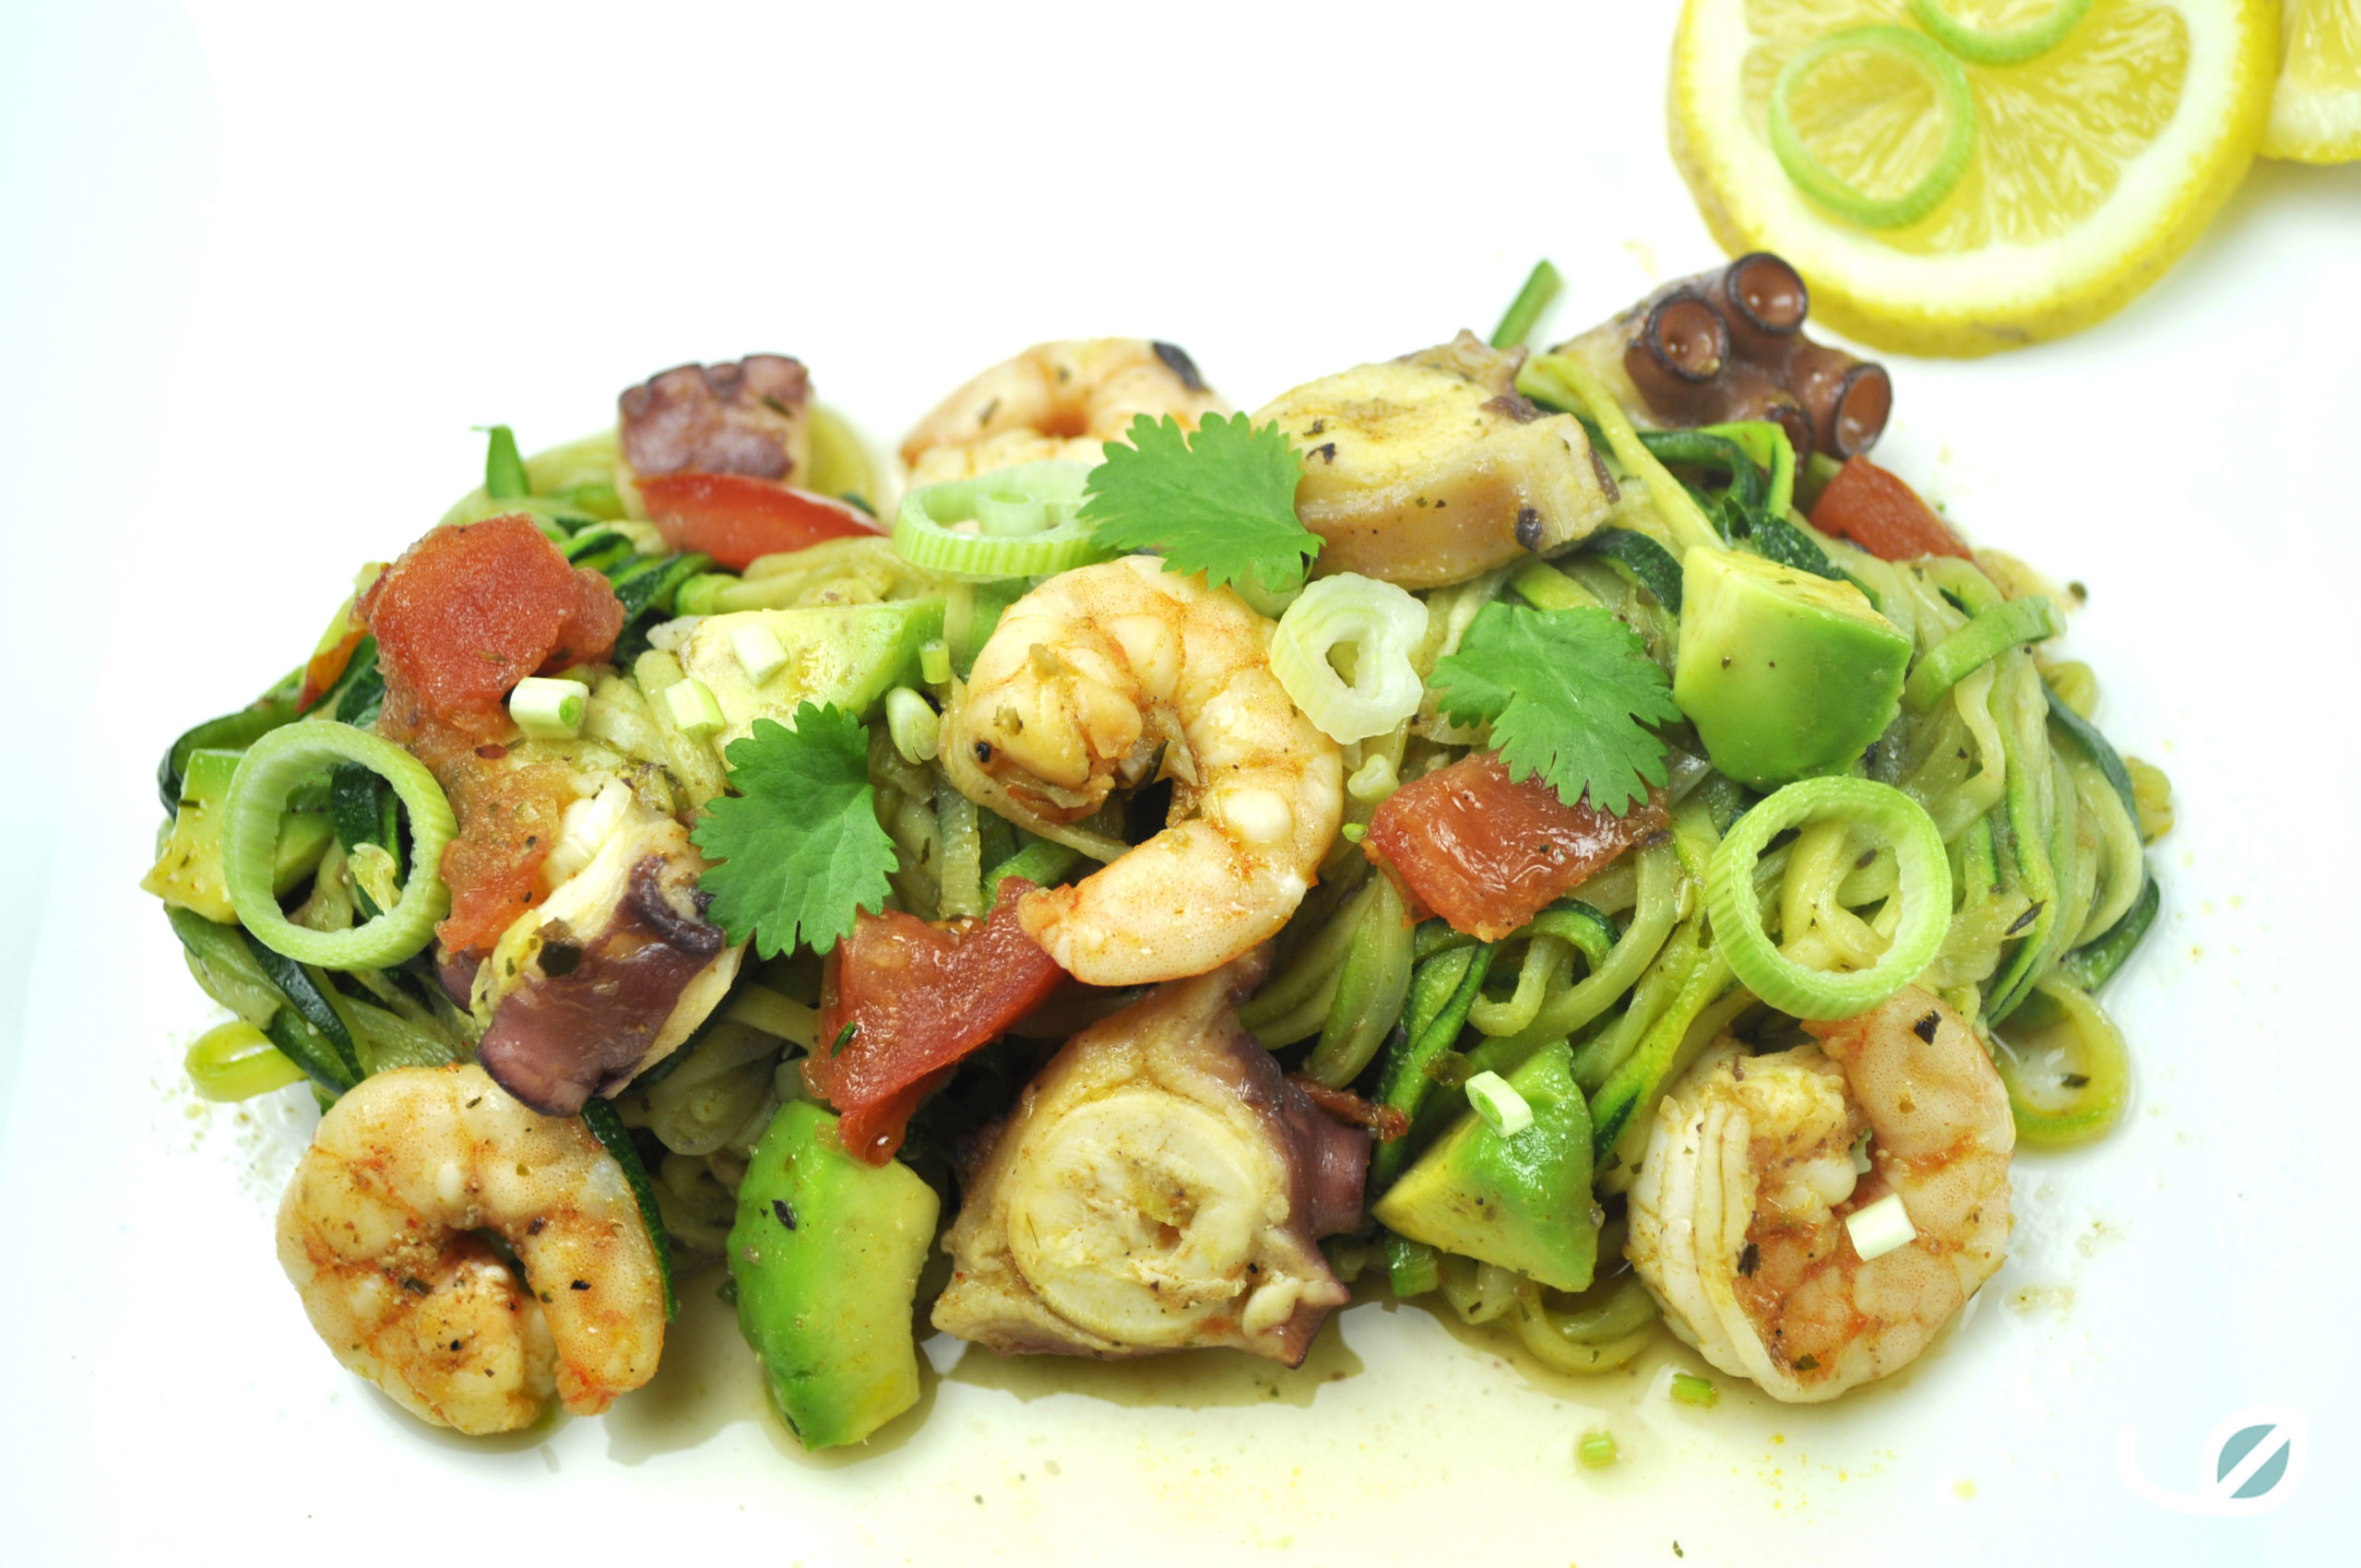 oolhydraatarme courgetti met scampi octopus avocado tomaat